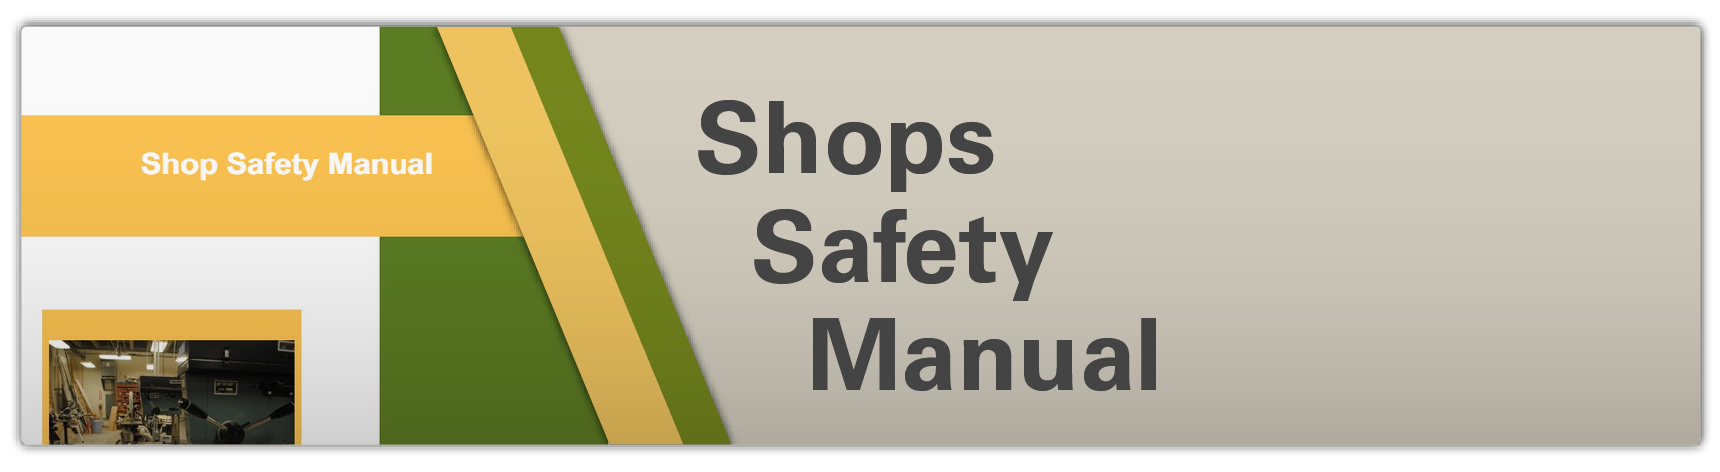 Shop Safety Manual